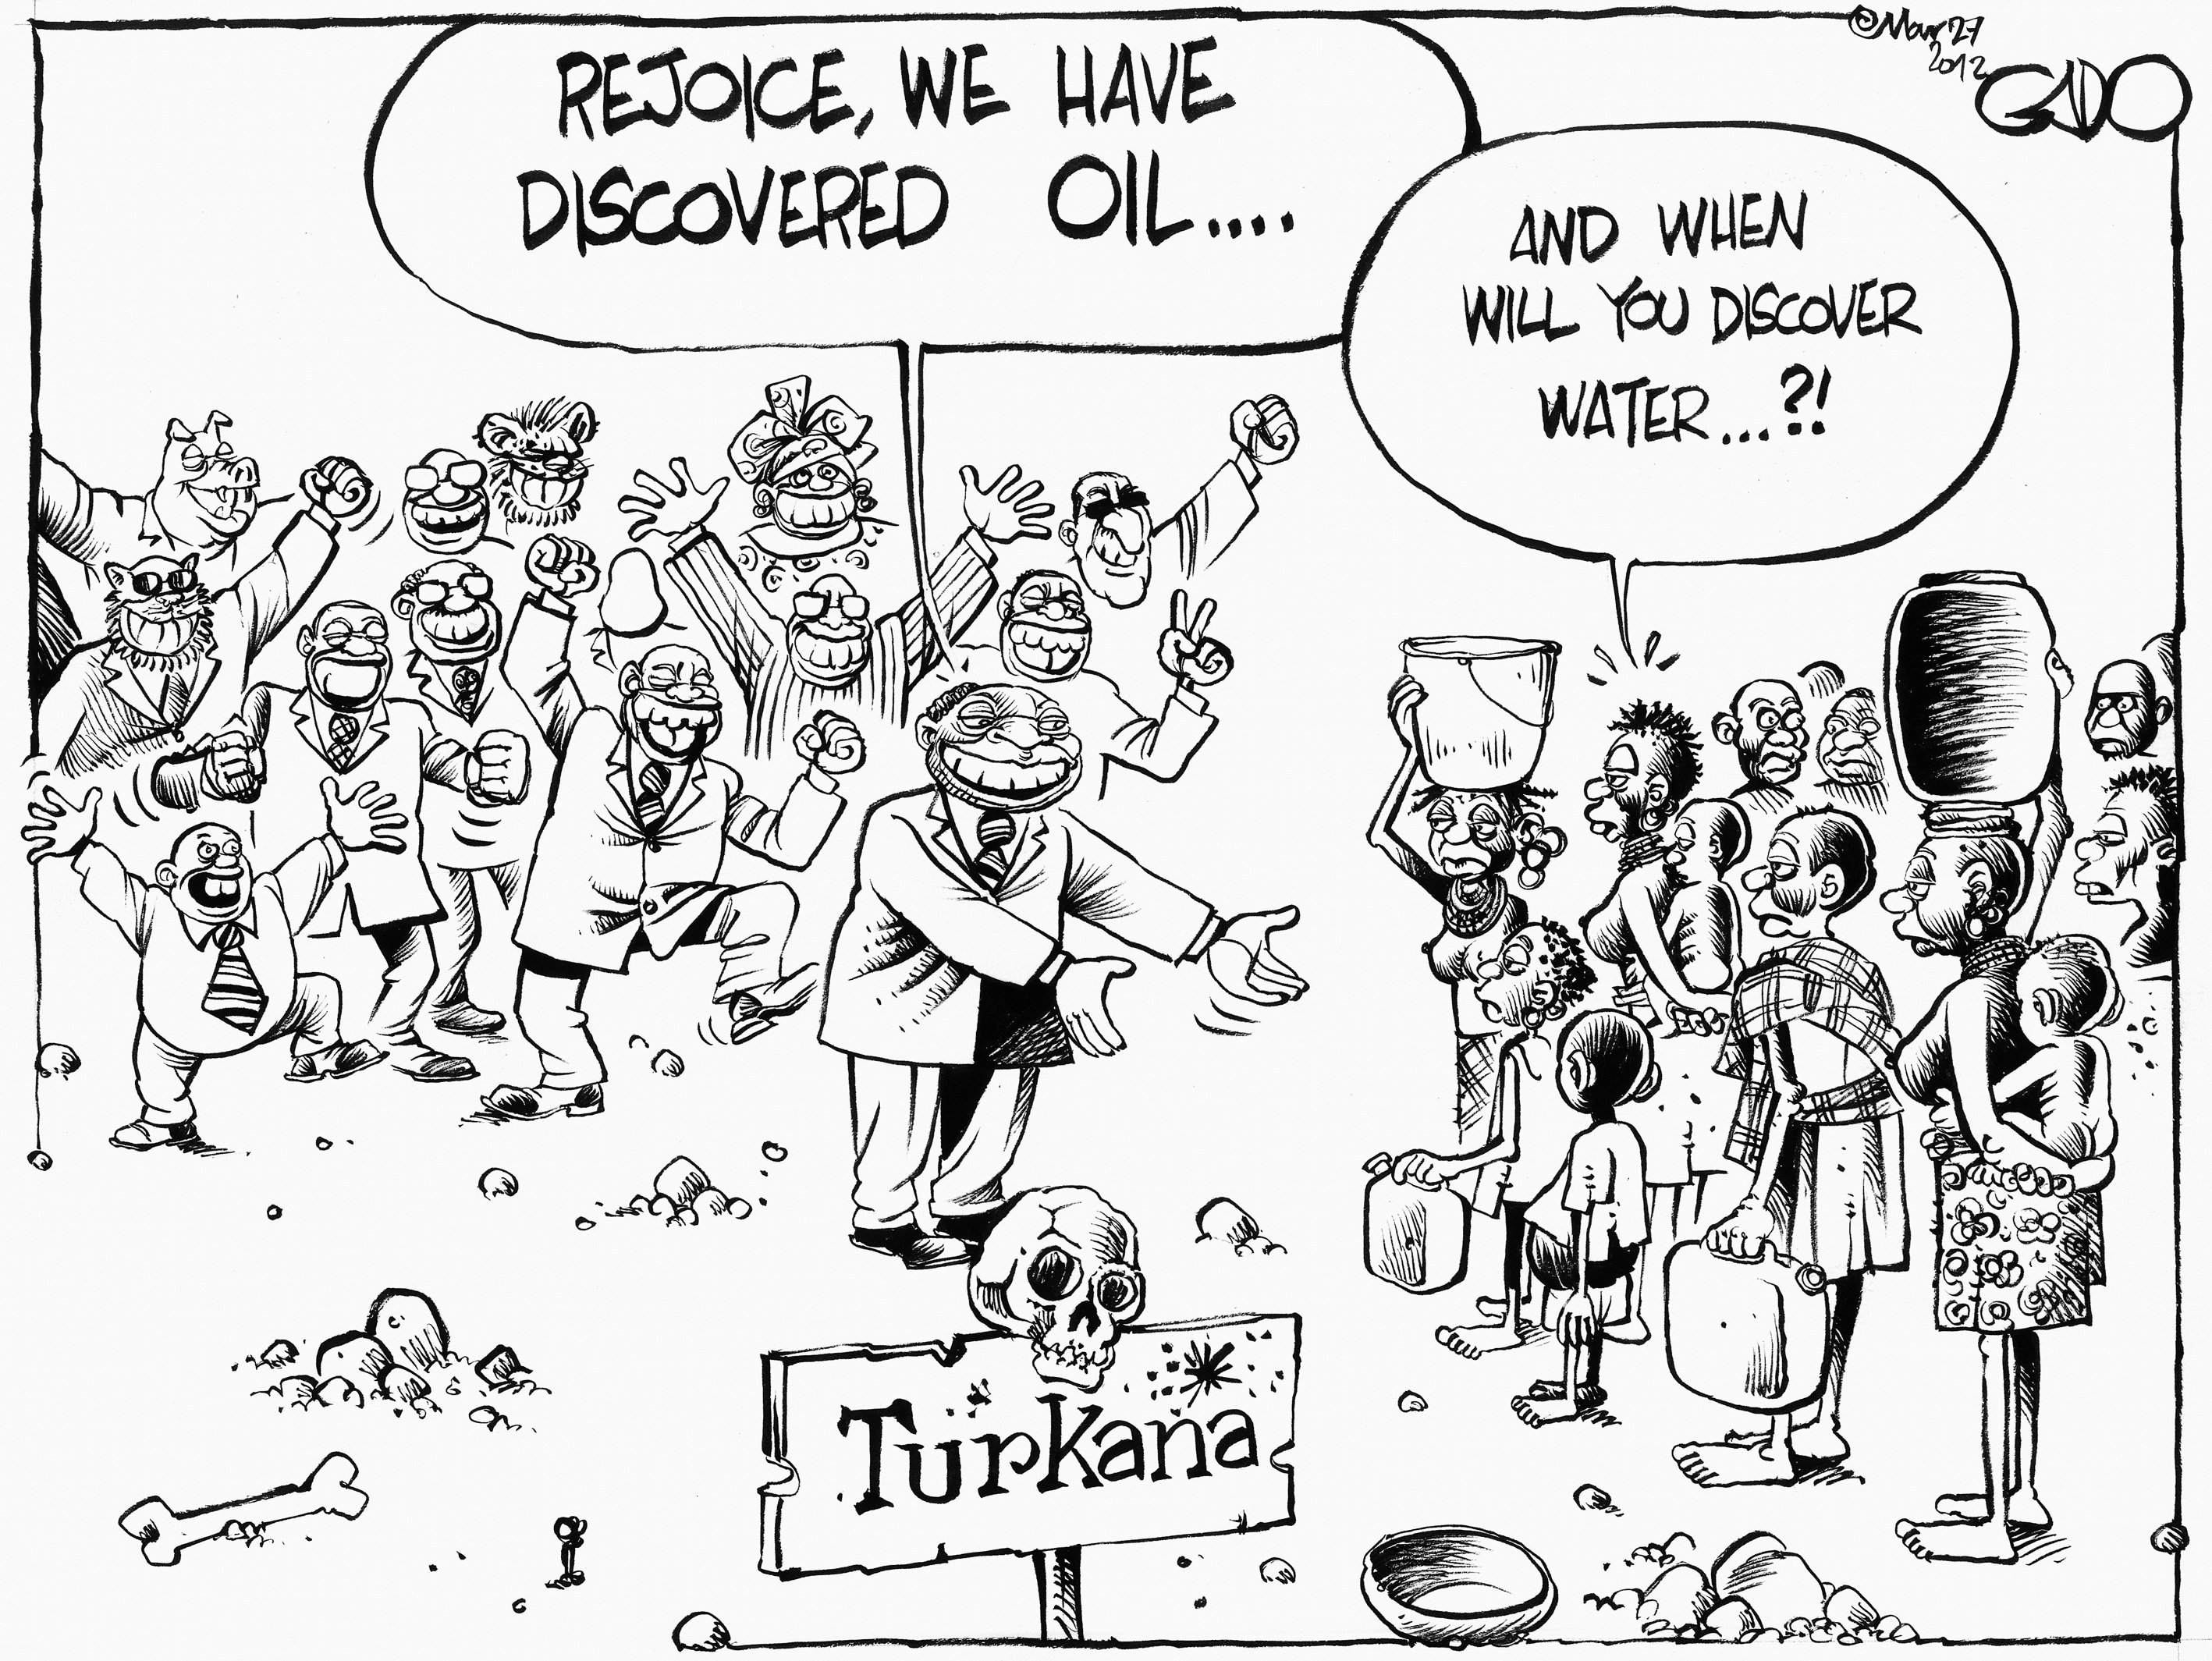 Gado, Kenya's leading cartoonist, takes a cynical view of recent oil discoveries